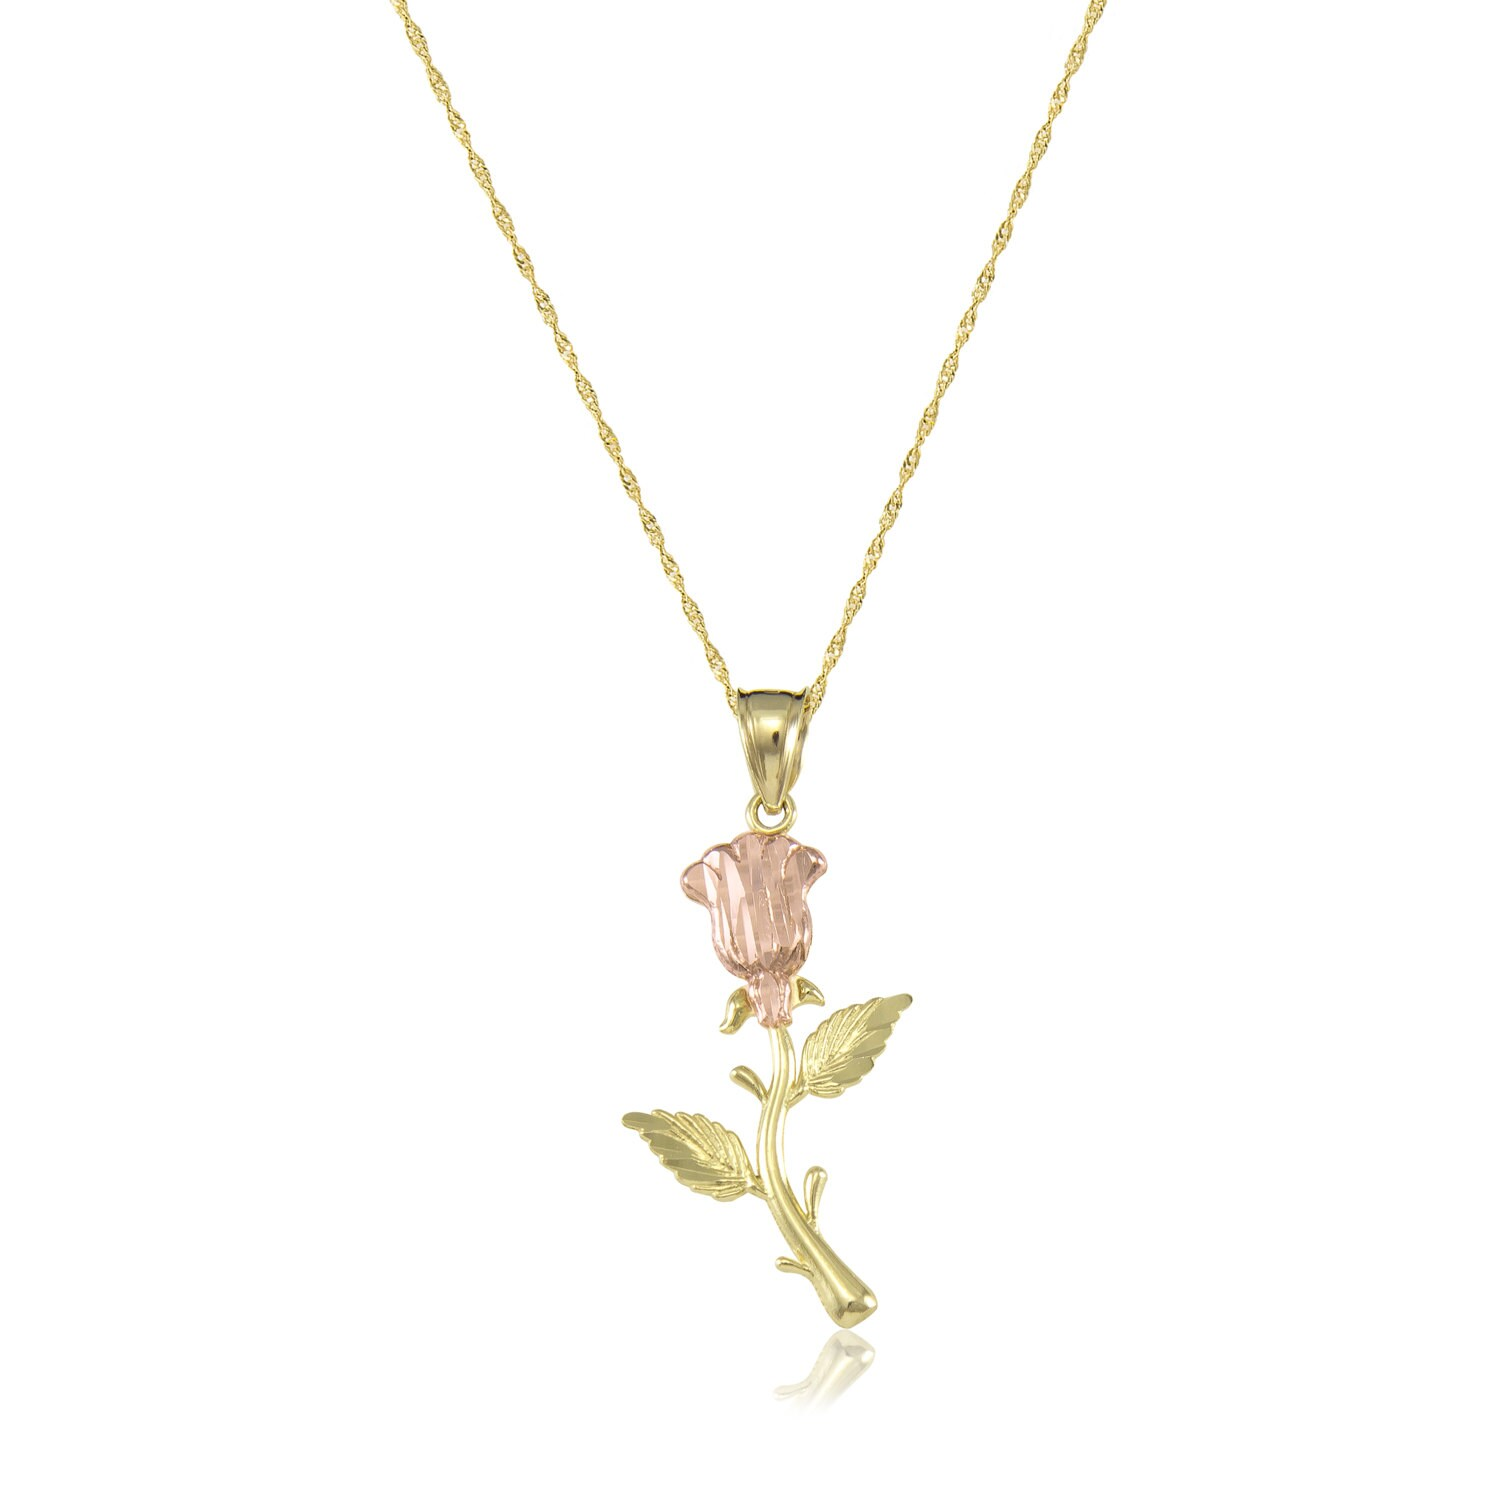 14k solid yellow rose gold rose pendant singapore chain necklace 14k solid yellow rose gold rose pendant singapore chain necklace set flower charm mozeypictures Images